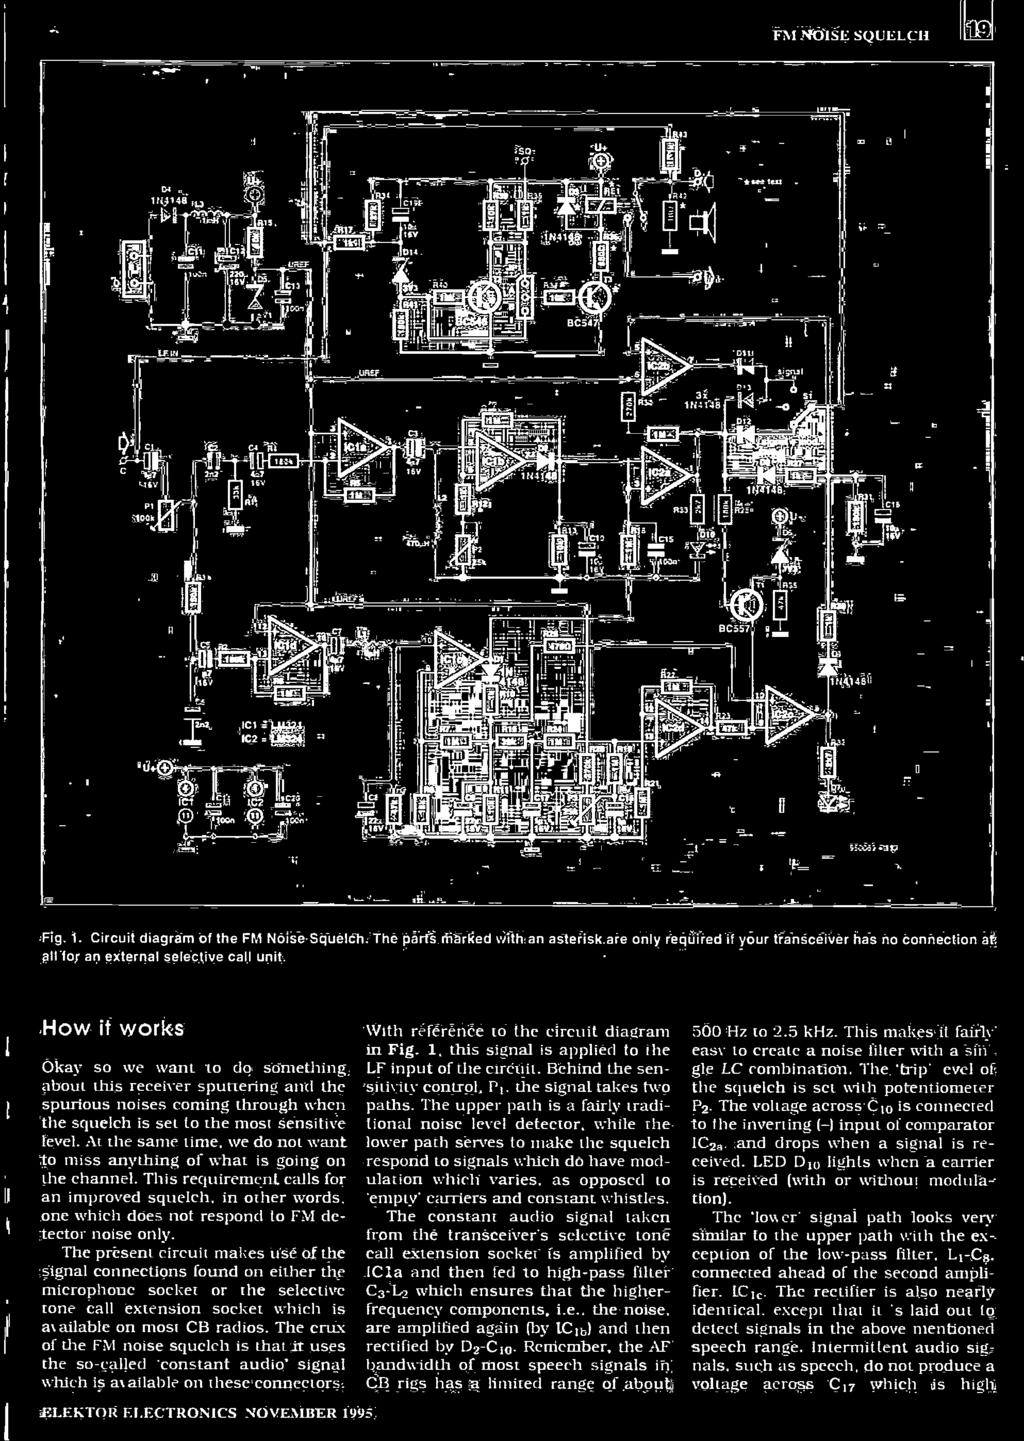 Audio Hi Fi Computers Microprocessors Design Ideas Radio Looking Diagrams Review Customers Circuit Easy Circuitmaker Sic How It Works Okay So We Want To Do Something About This Receiver Sputtering And The